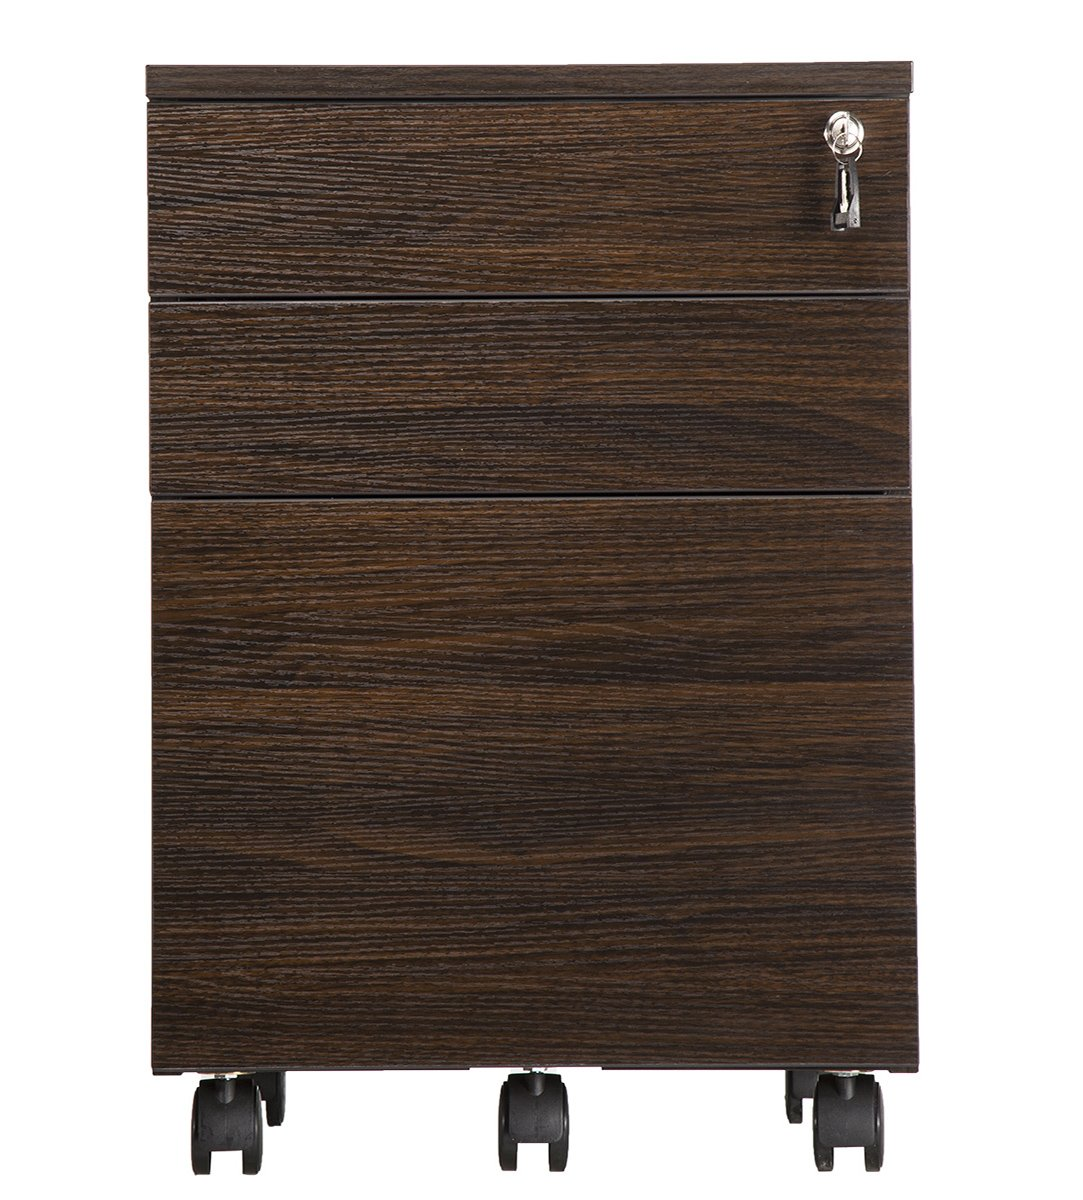 TOPSKY 3 Drawer Wood Mobile File Cabinet Fully Assembled Except Casters (WALNUT) by TOPSKY (Image #2)